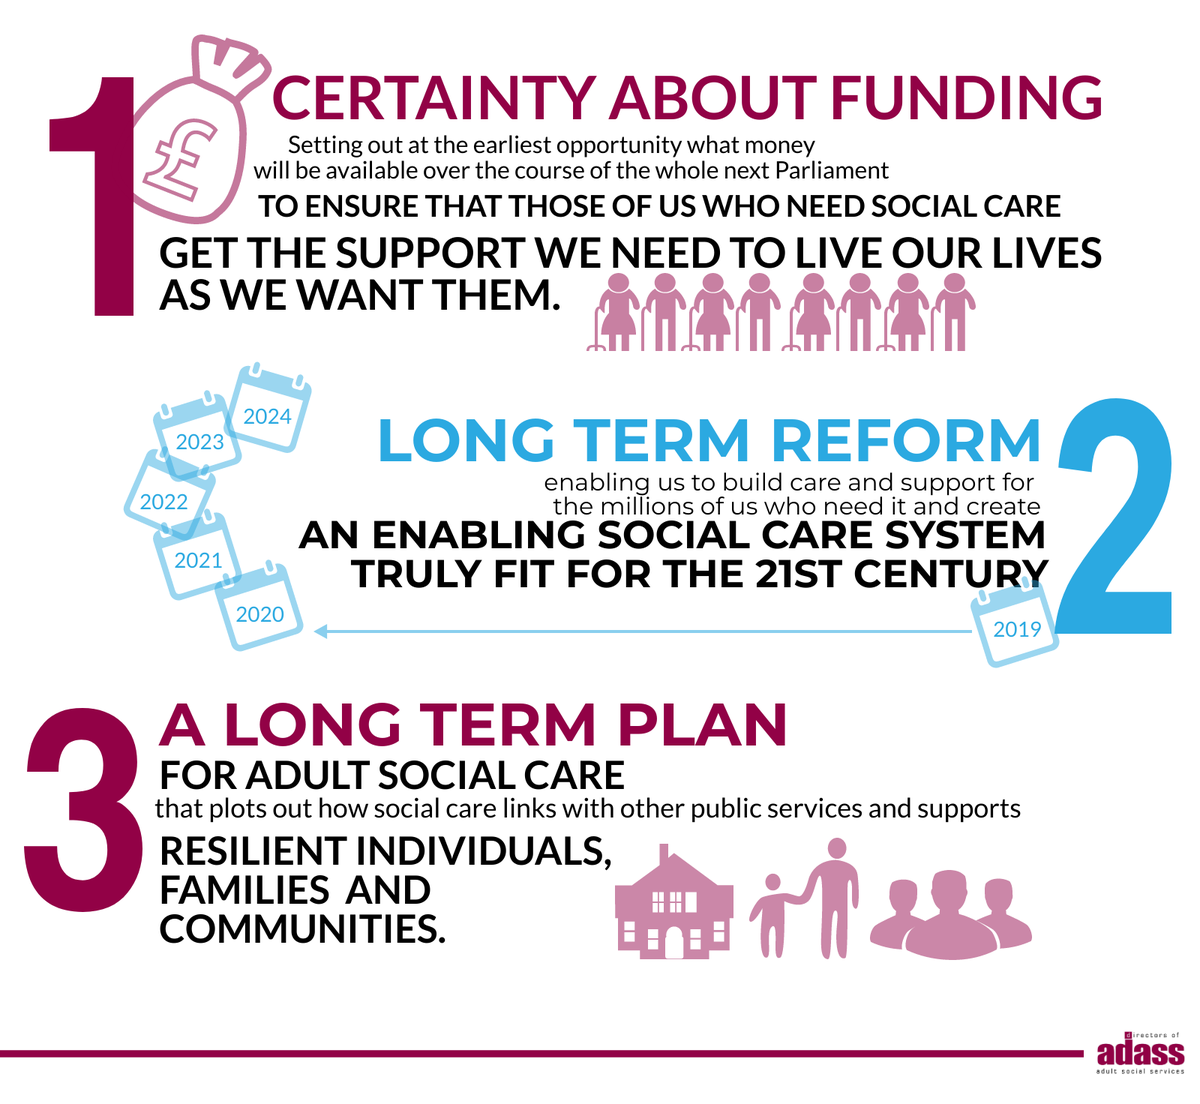 test Twitter Media - Whoever forms the next government must make a choice and prioritise adult social care.  They must give certainty about funding, longer-term reform and a long-term plan that puts fairness at the heart of everything. Read the findings of our short survey https://t.co/9PPdI0zXJs https://t.co/17cUuTIhpU